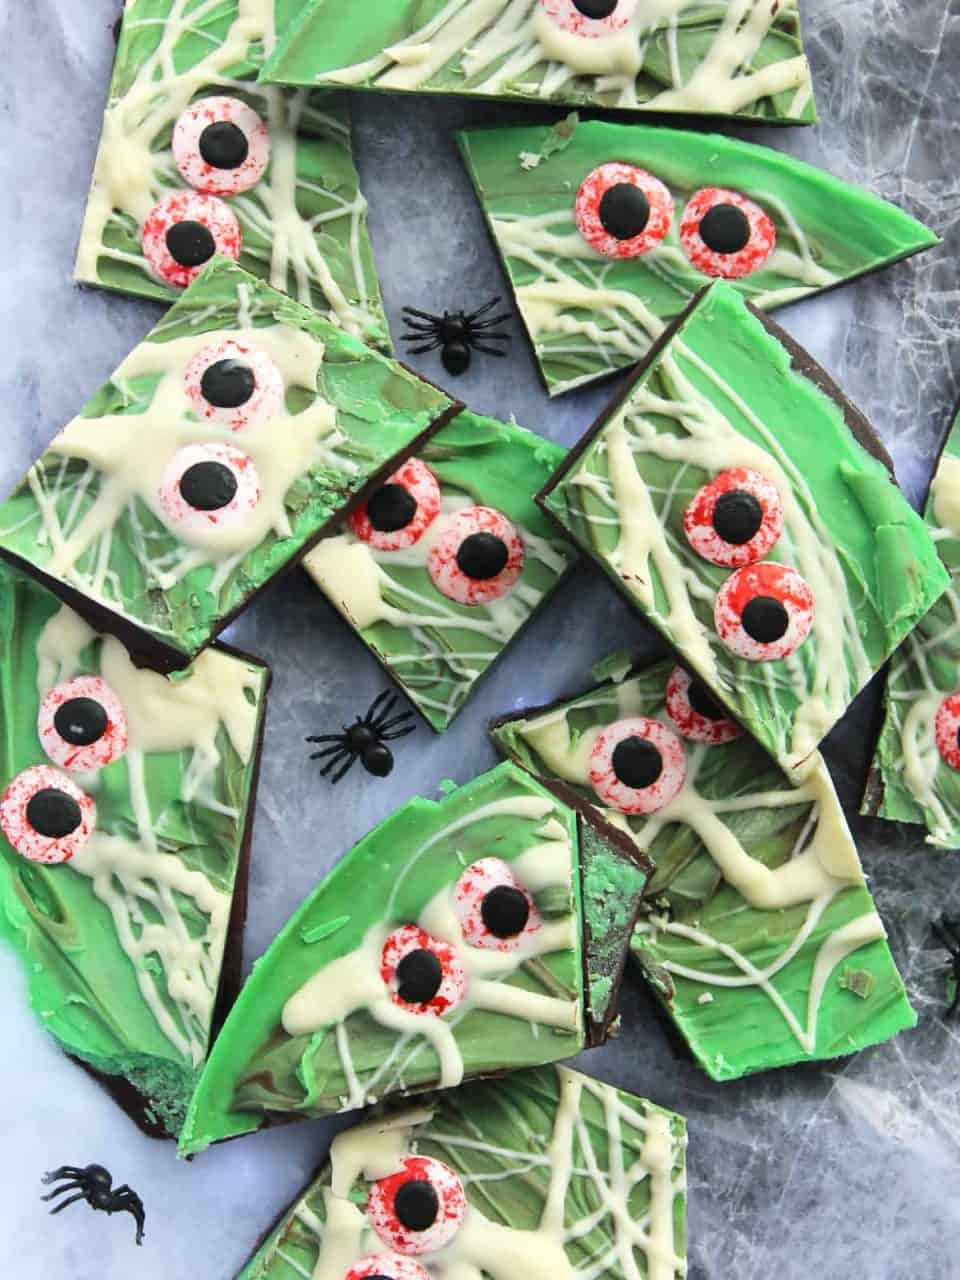 Nine pieces of Halloween bark with plastic spiders around them.